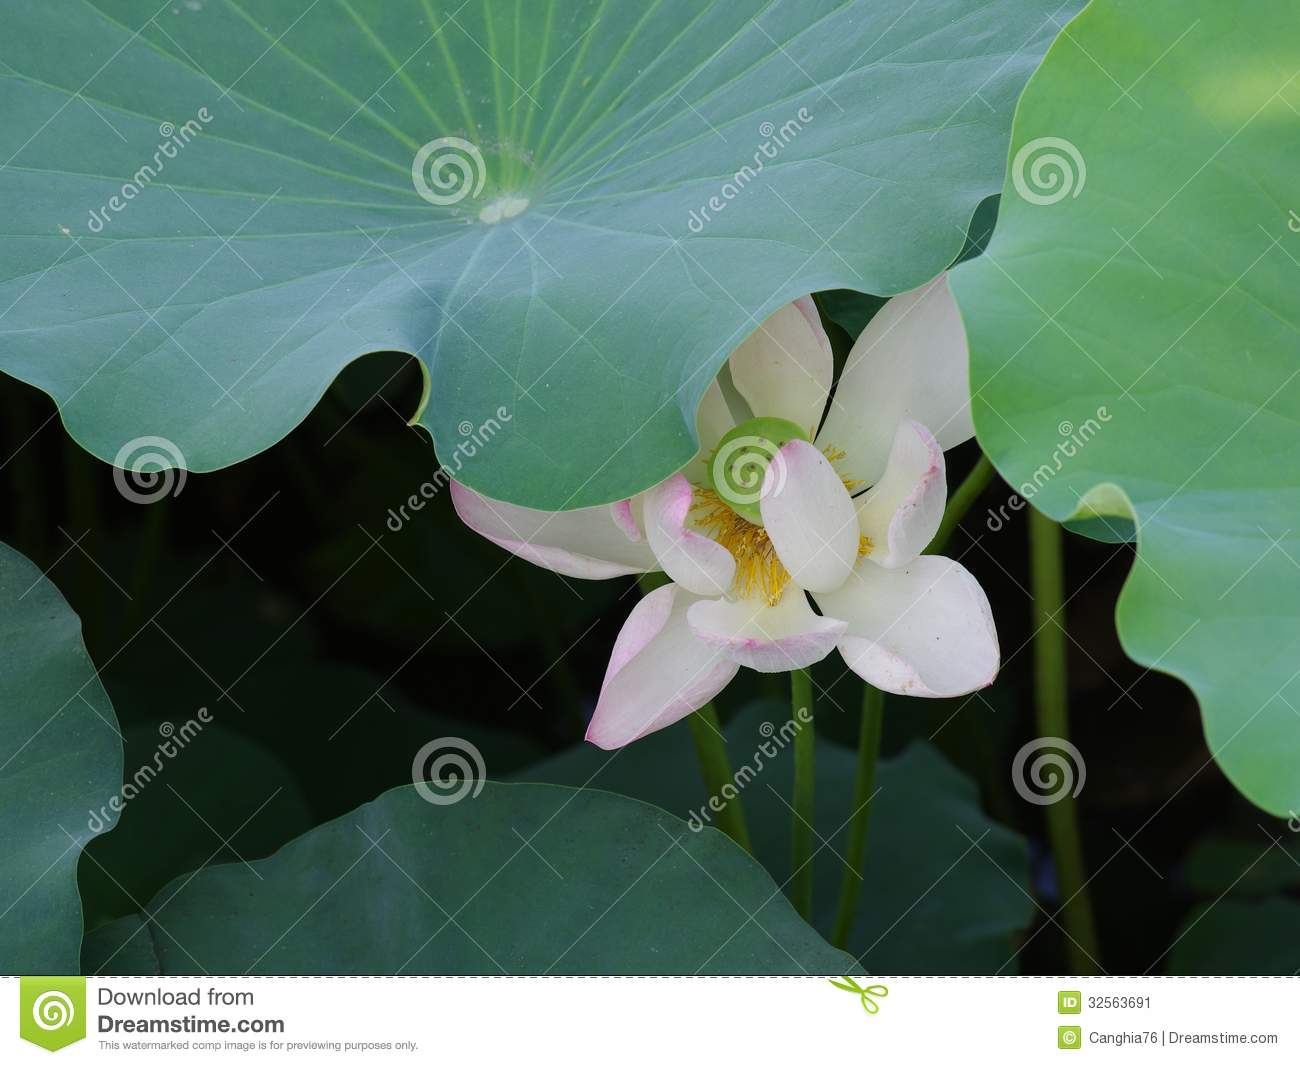 Twain pink water lily flower lotus stock image image of bloom the lotus flower water lily is national flower for india lotus flower is a important symbol in asian culture mightylinksfo